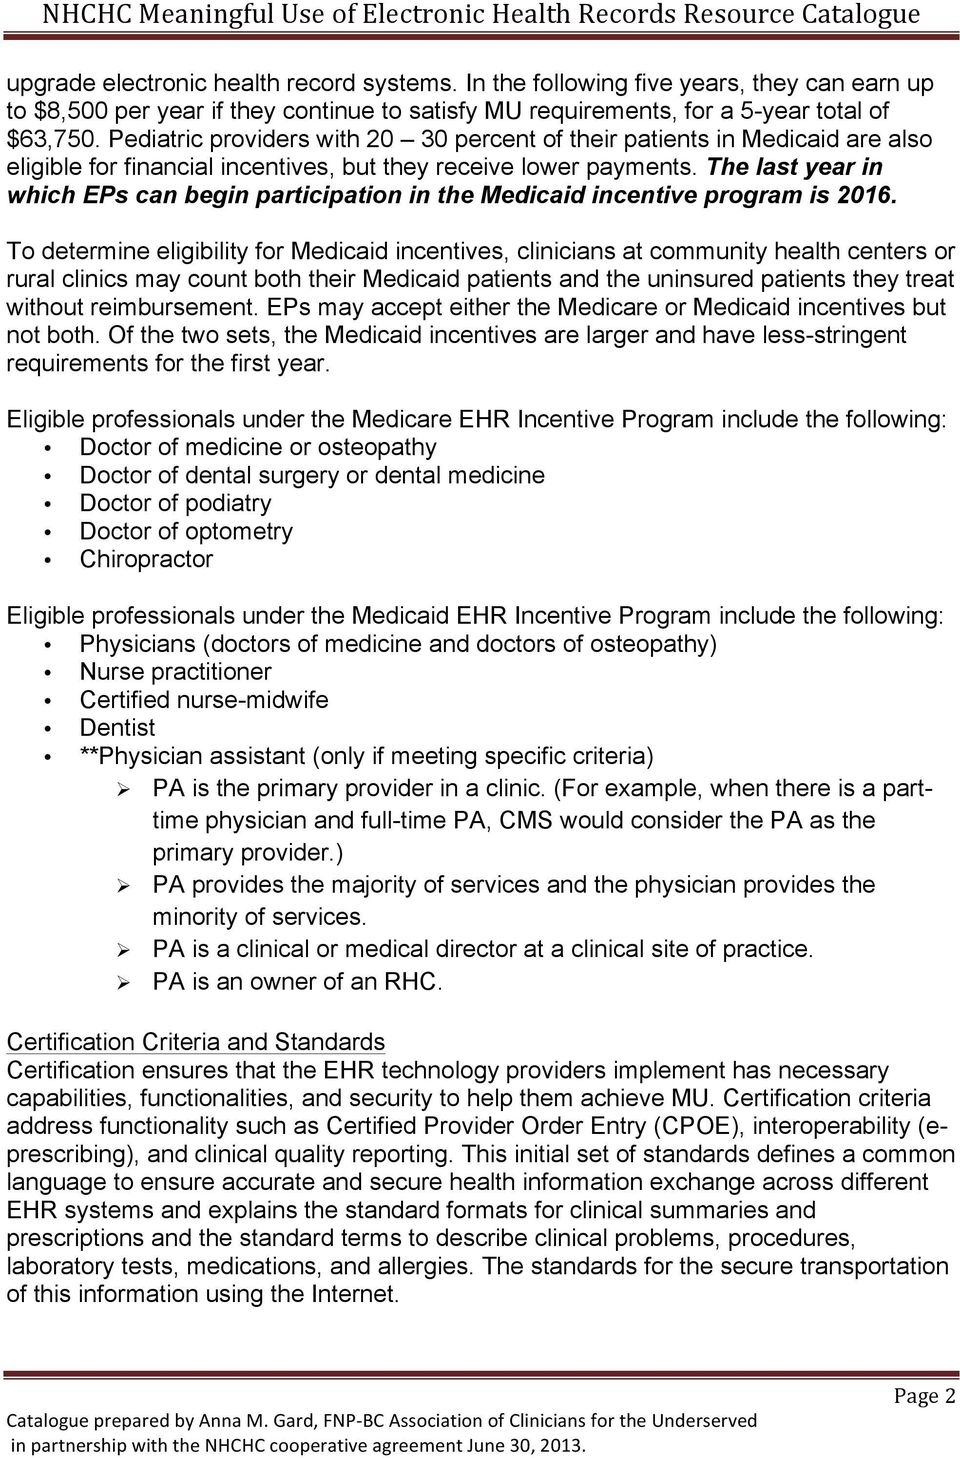 The last year in which EPs can begin participation in the Medicaid incentive program is 2016.